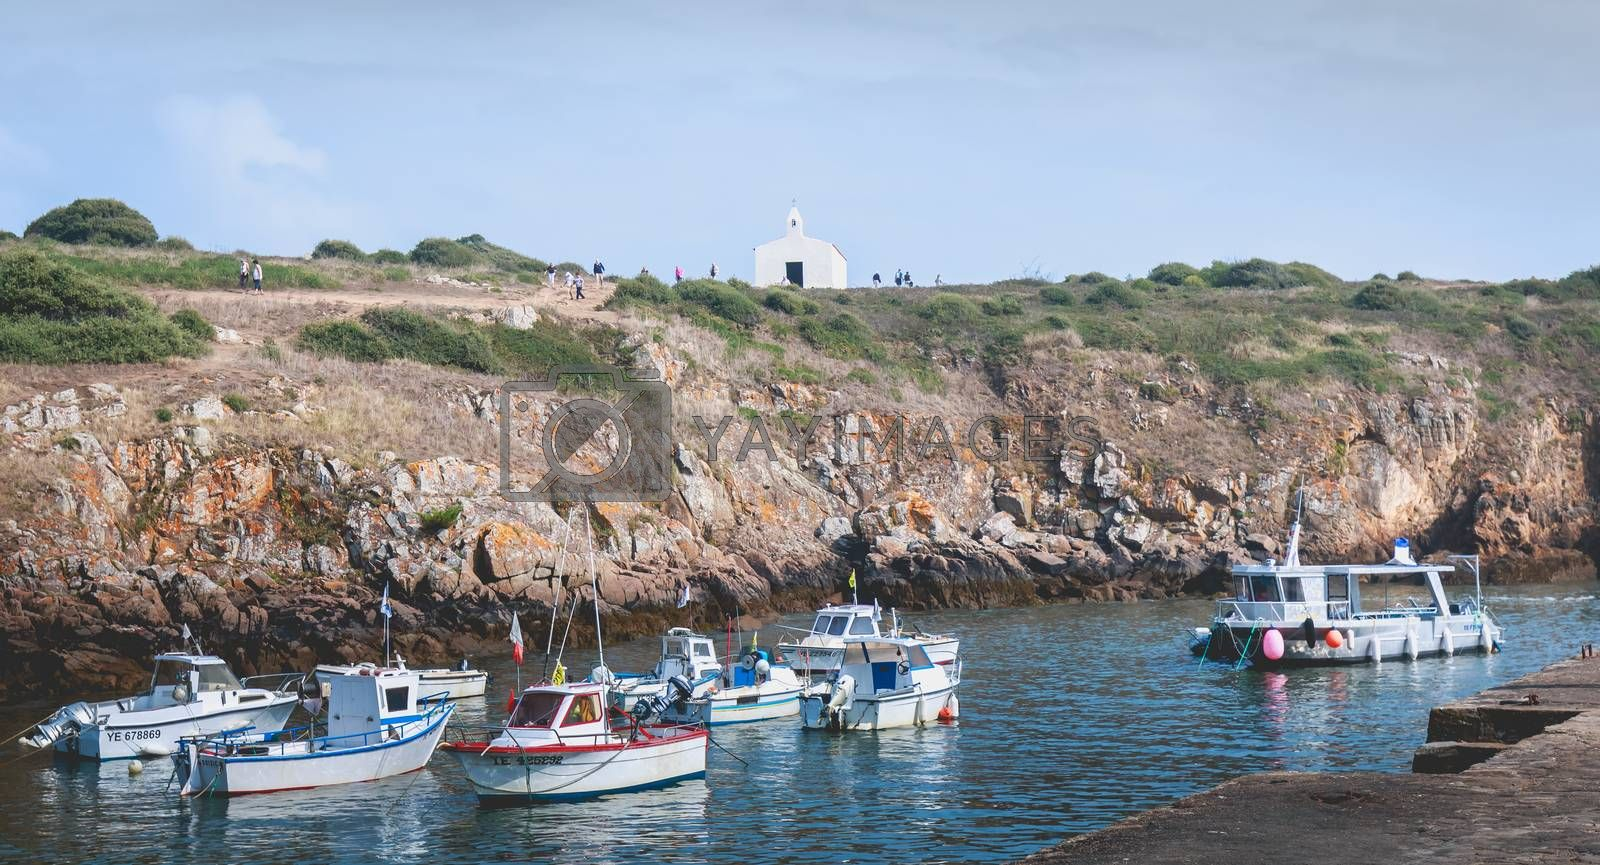 La Meule, France - September 18, 2018: view of the marina of Port la Meule on the island of Yeu where are moored pleasure boats on a summer day